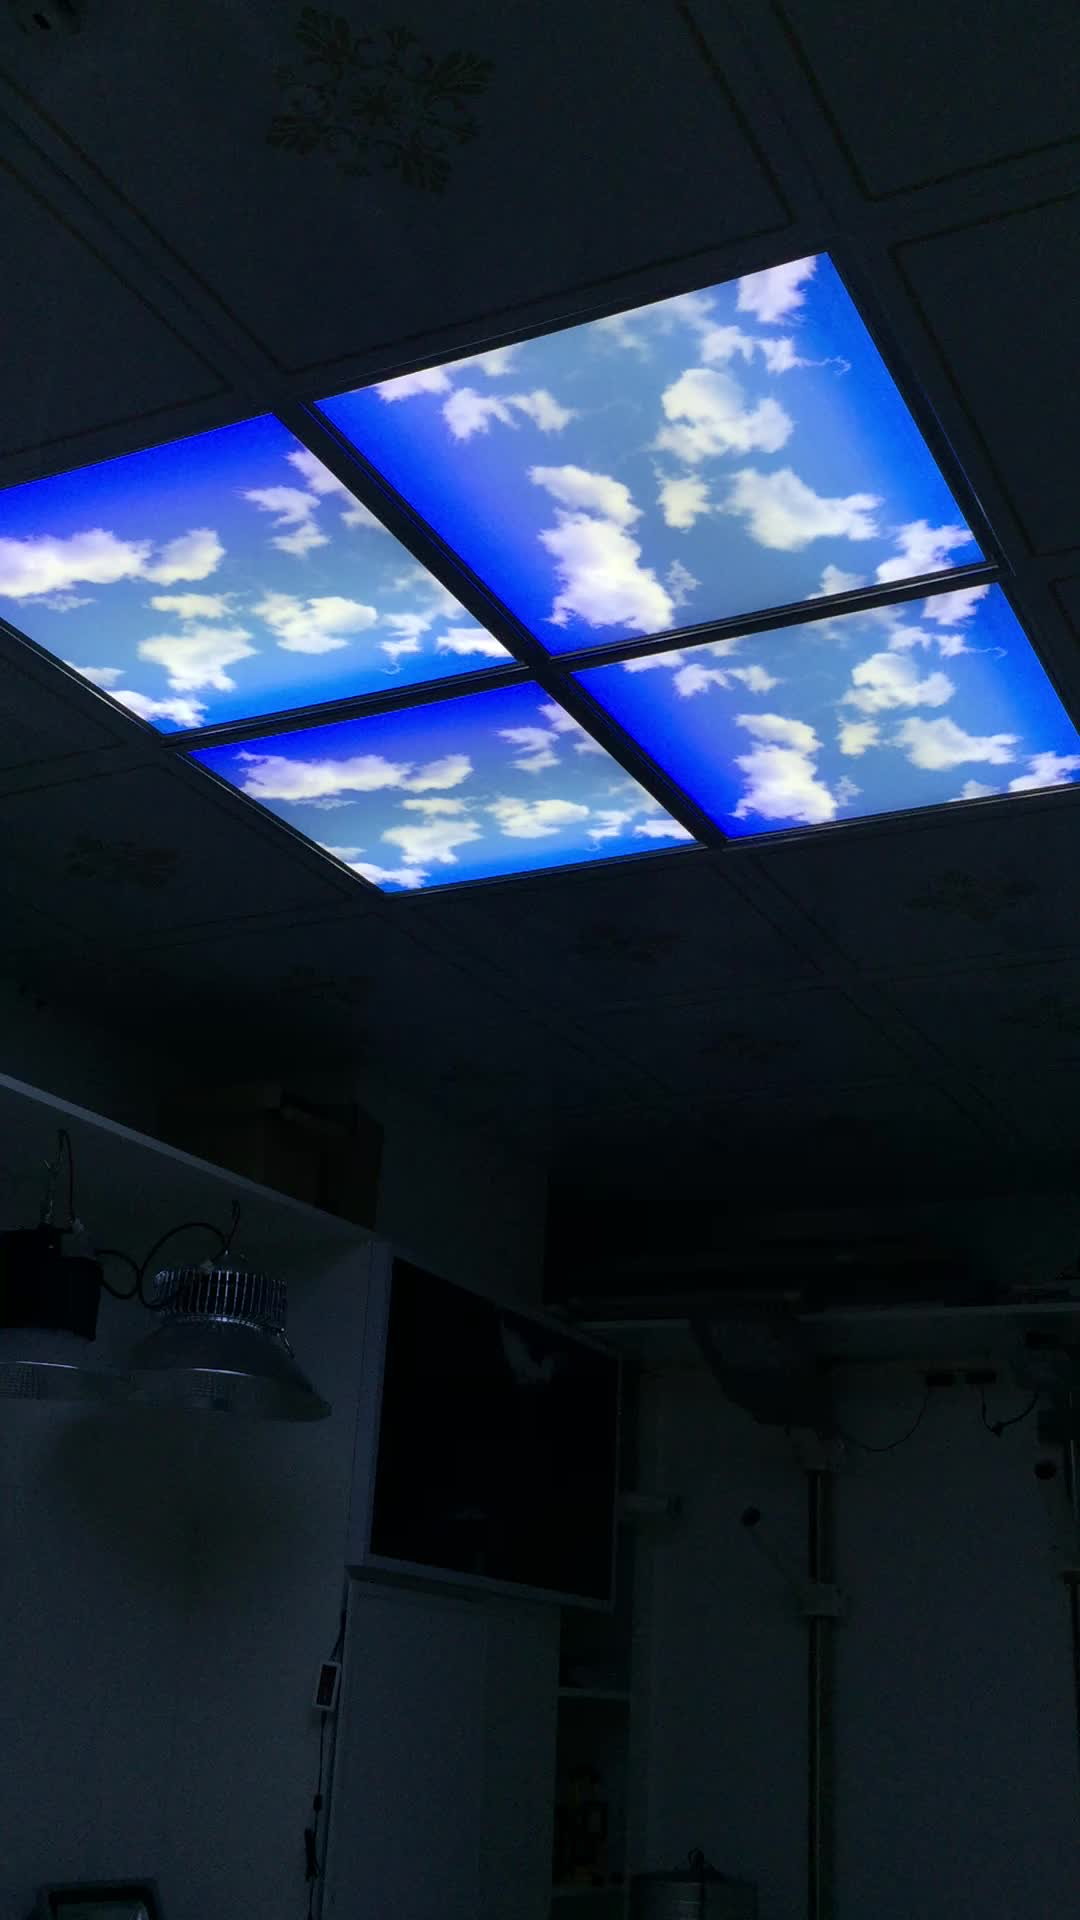 wholesale home and office blue lighting ultra slim 36w led sky